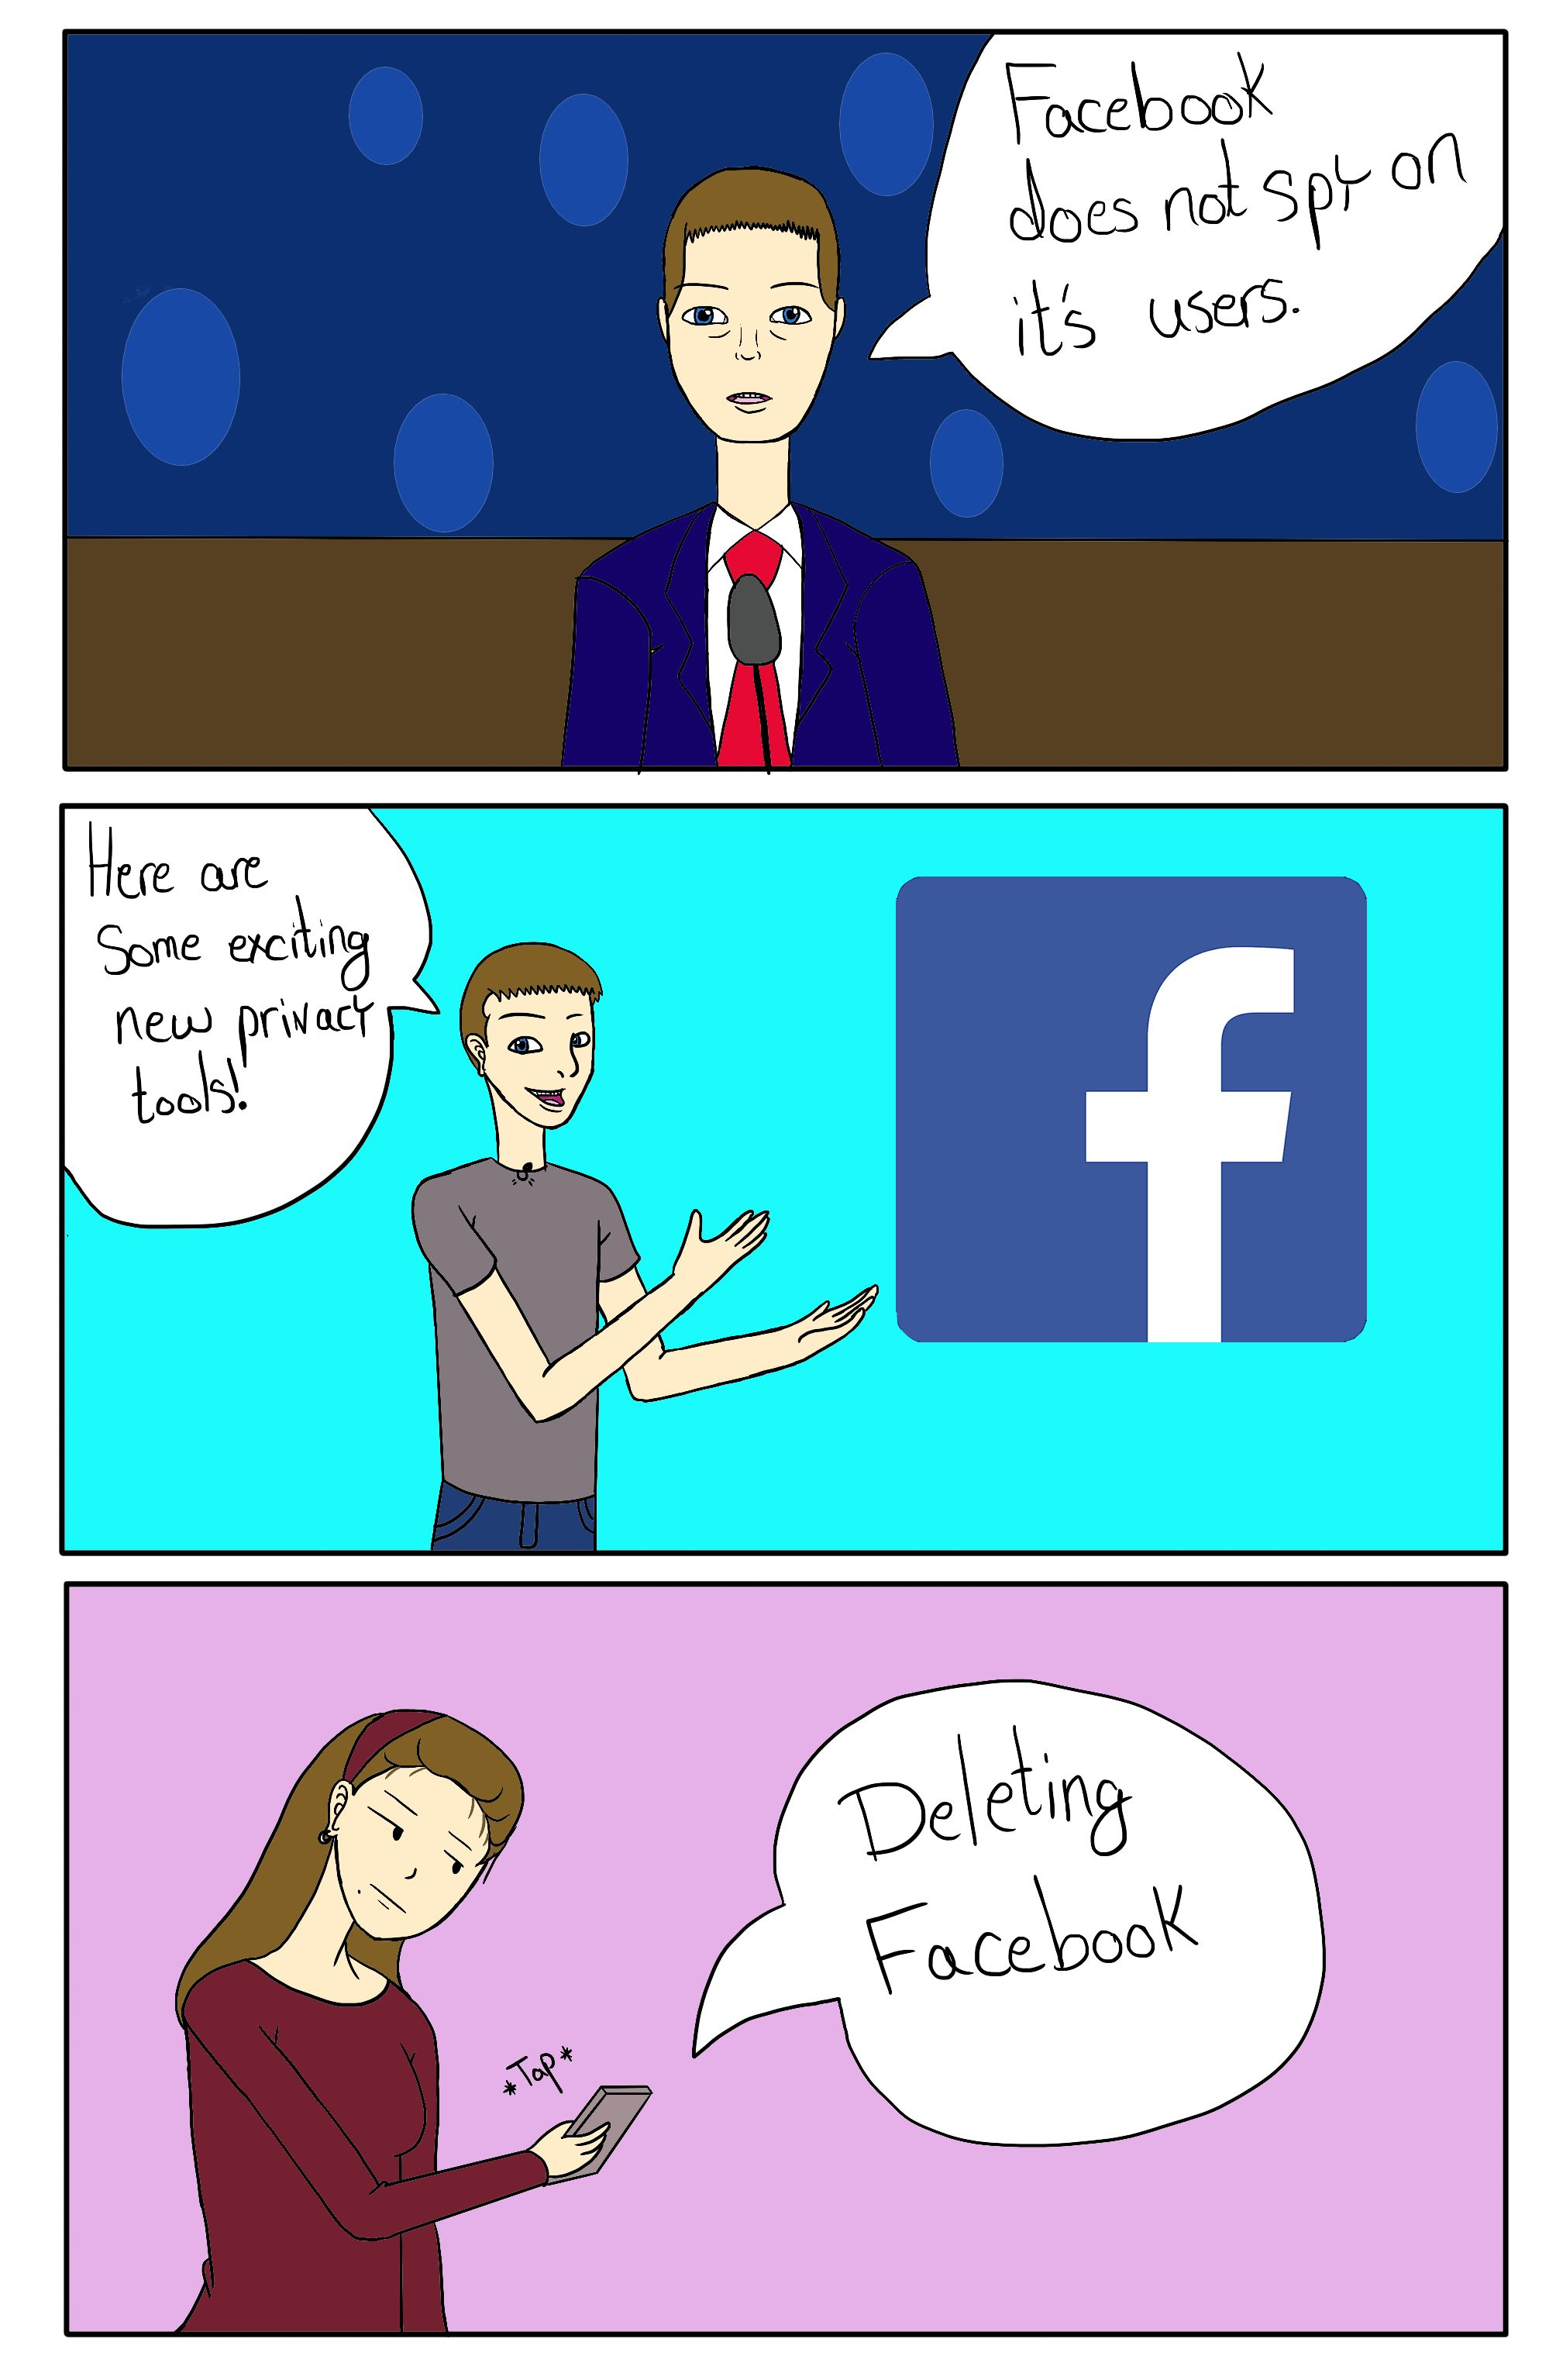 Comic of Mark Zuckerberg, CEO and founder of Facebook testifying before Congress then announcing new privacy tools at a Facebook event then a user deleting Facebook